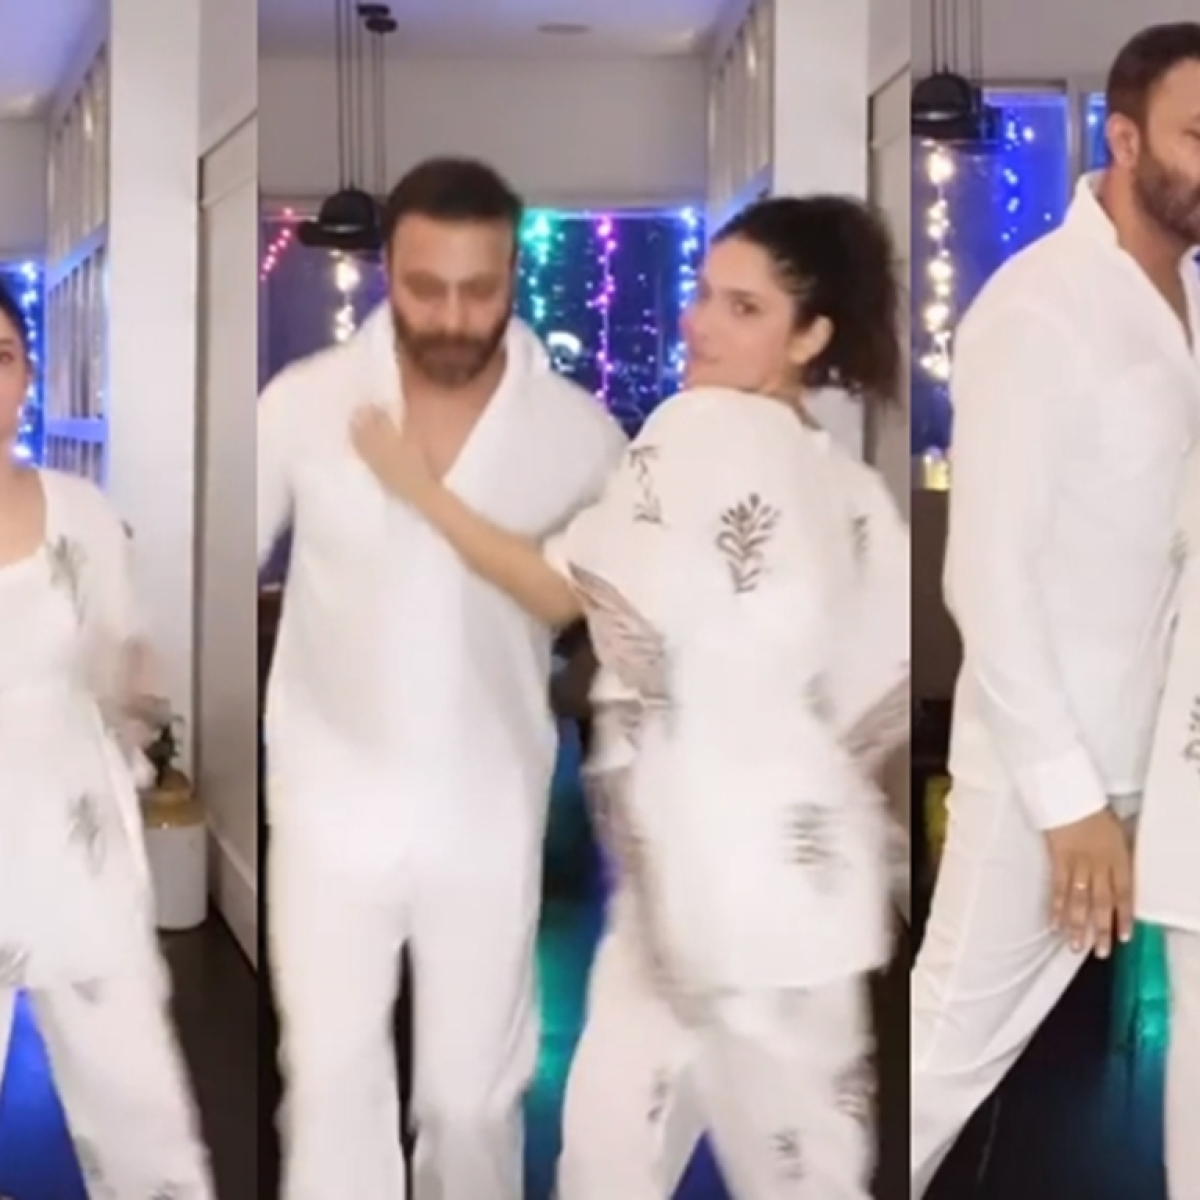 'Ye umid nai thi': SSR fans troll Ankita Lokhande dancing in 'night dress' with beau Vicky Jain, watch video